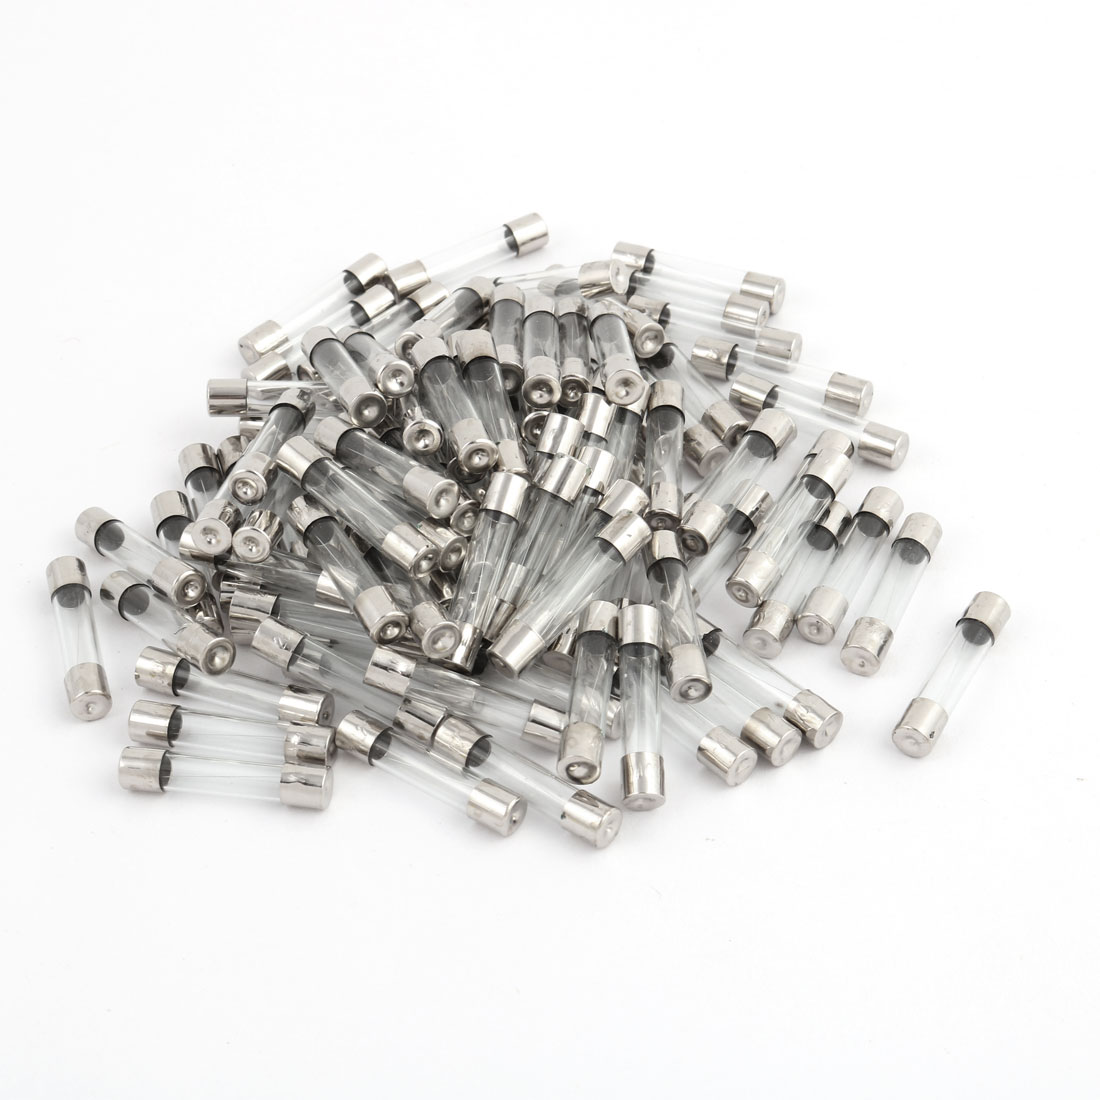 100 Pcs 250V 3A 6mm x 30mm Glass Tube Fuse Silver Tone for Electric Safety